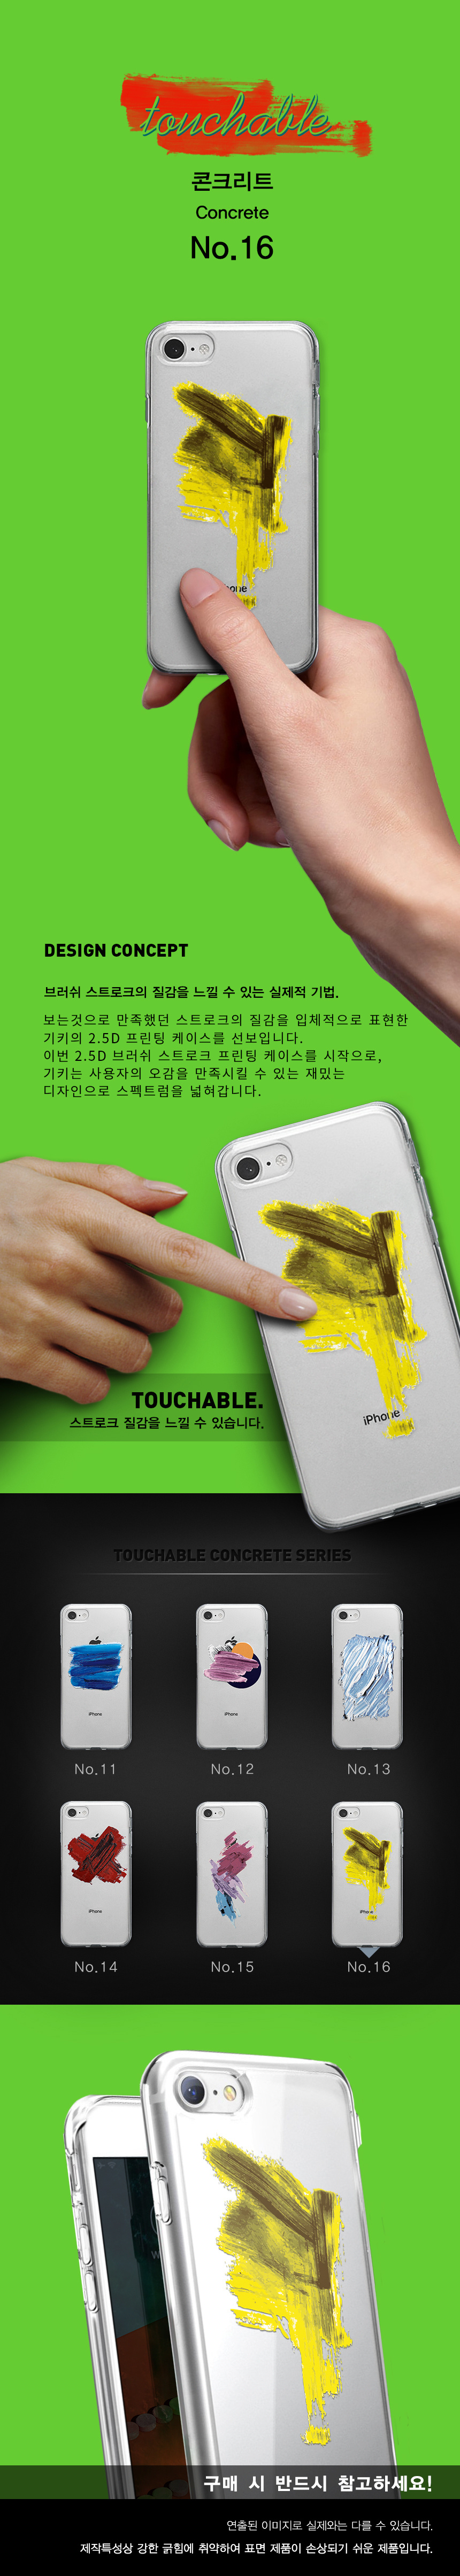 기키(GEEKY) [투명] phone case concrete no.16